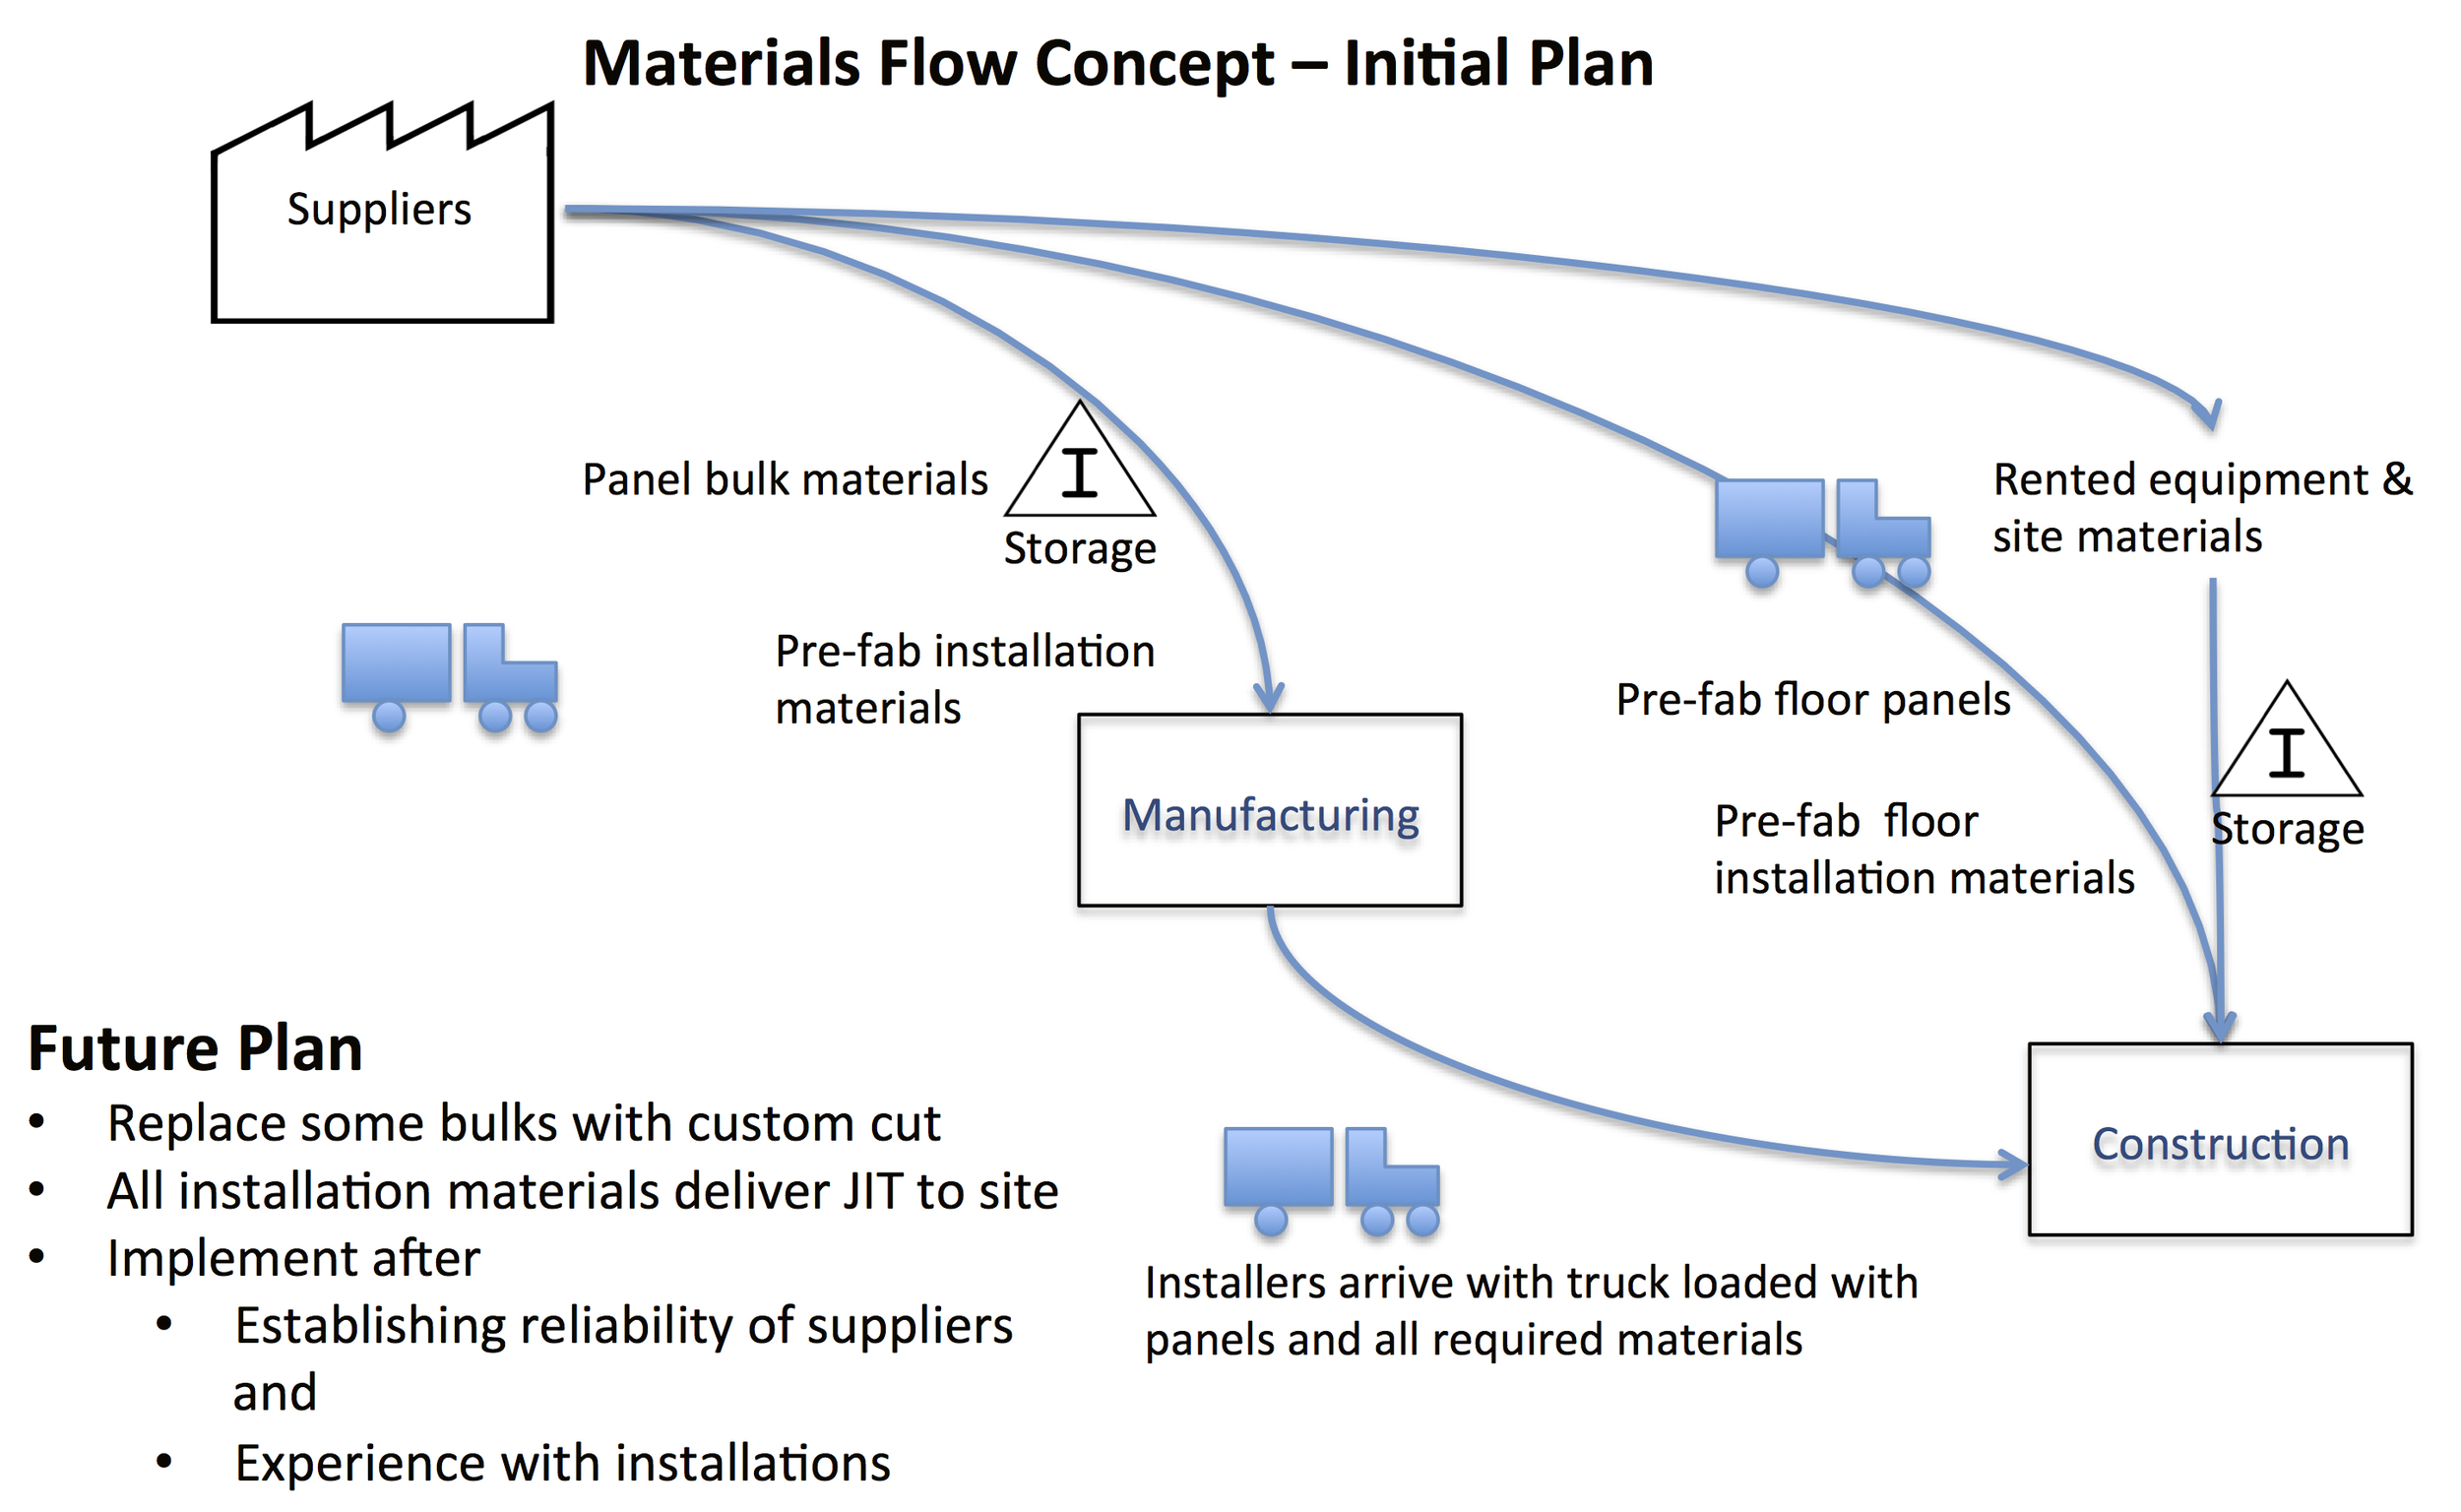 The general flow of materials is pictured here as anticipated for the start of operations. As the process matures, the stockpiles will be addressed.